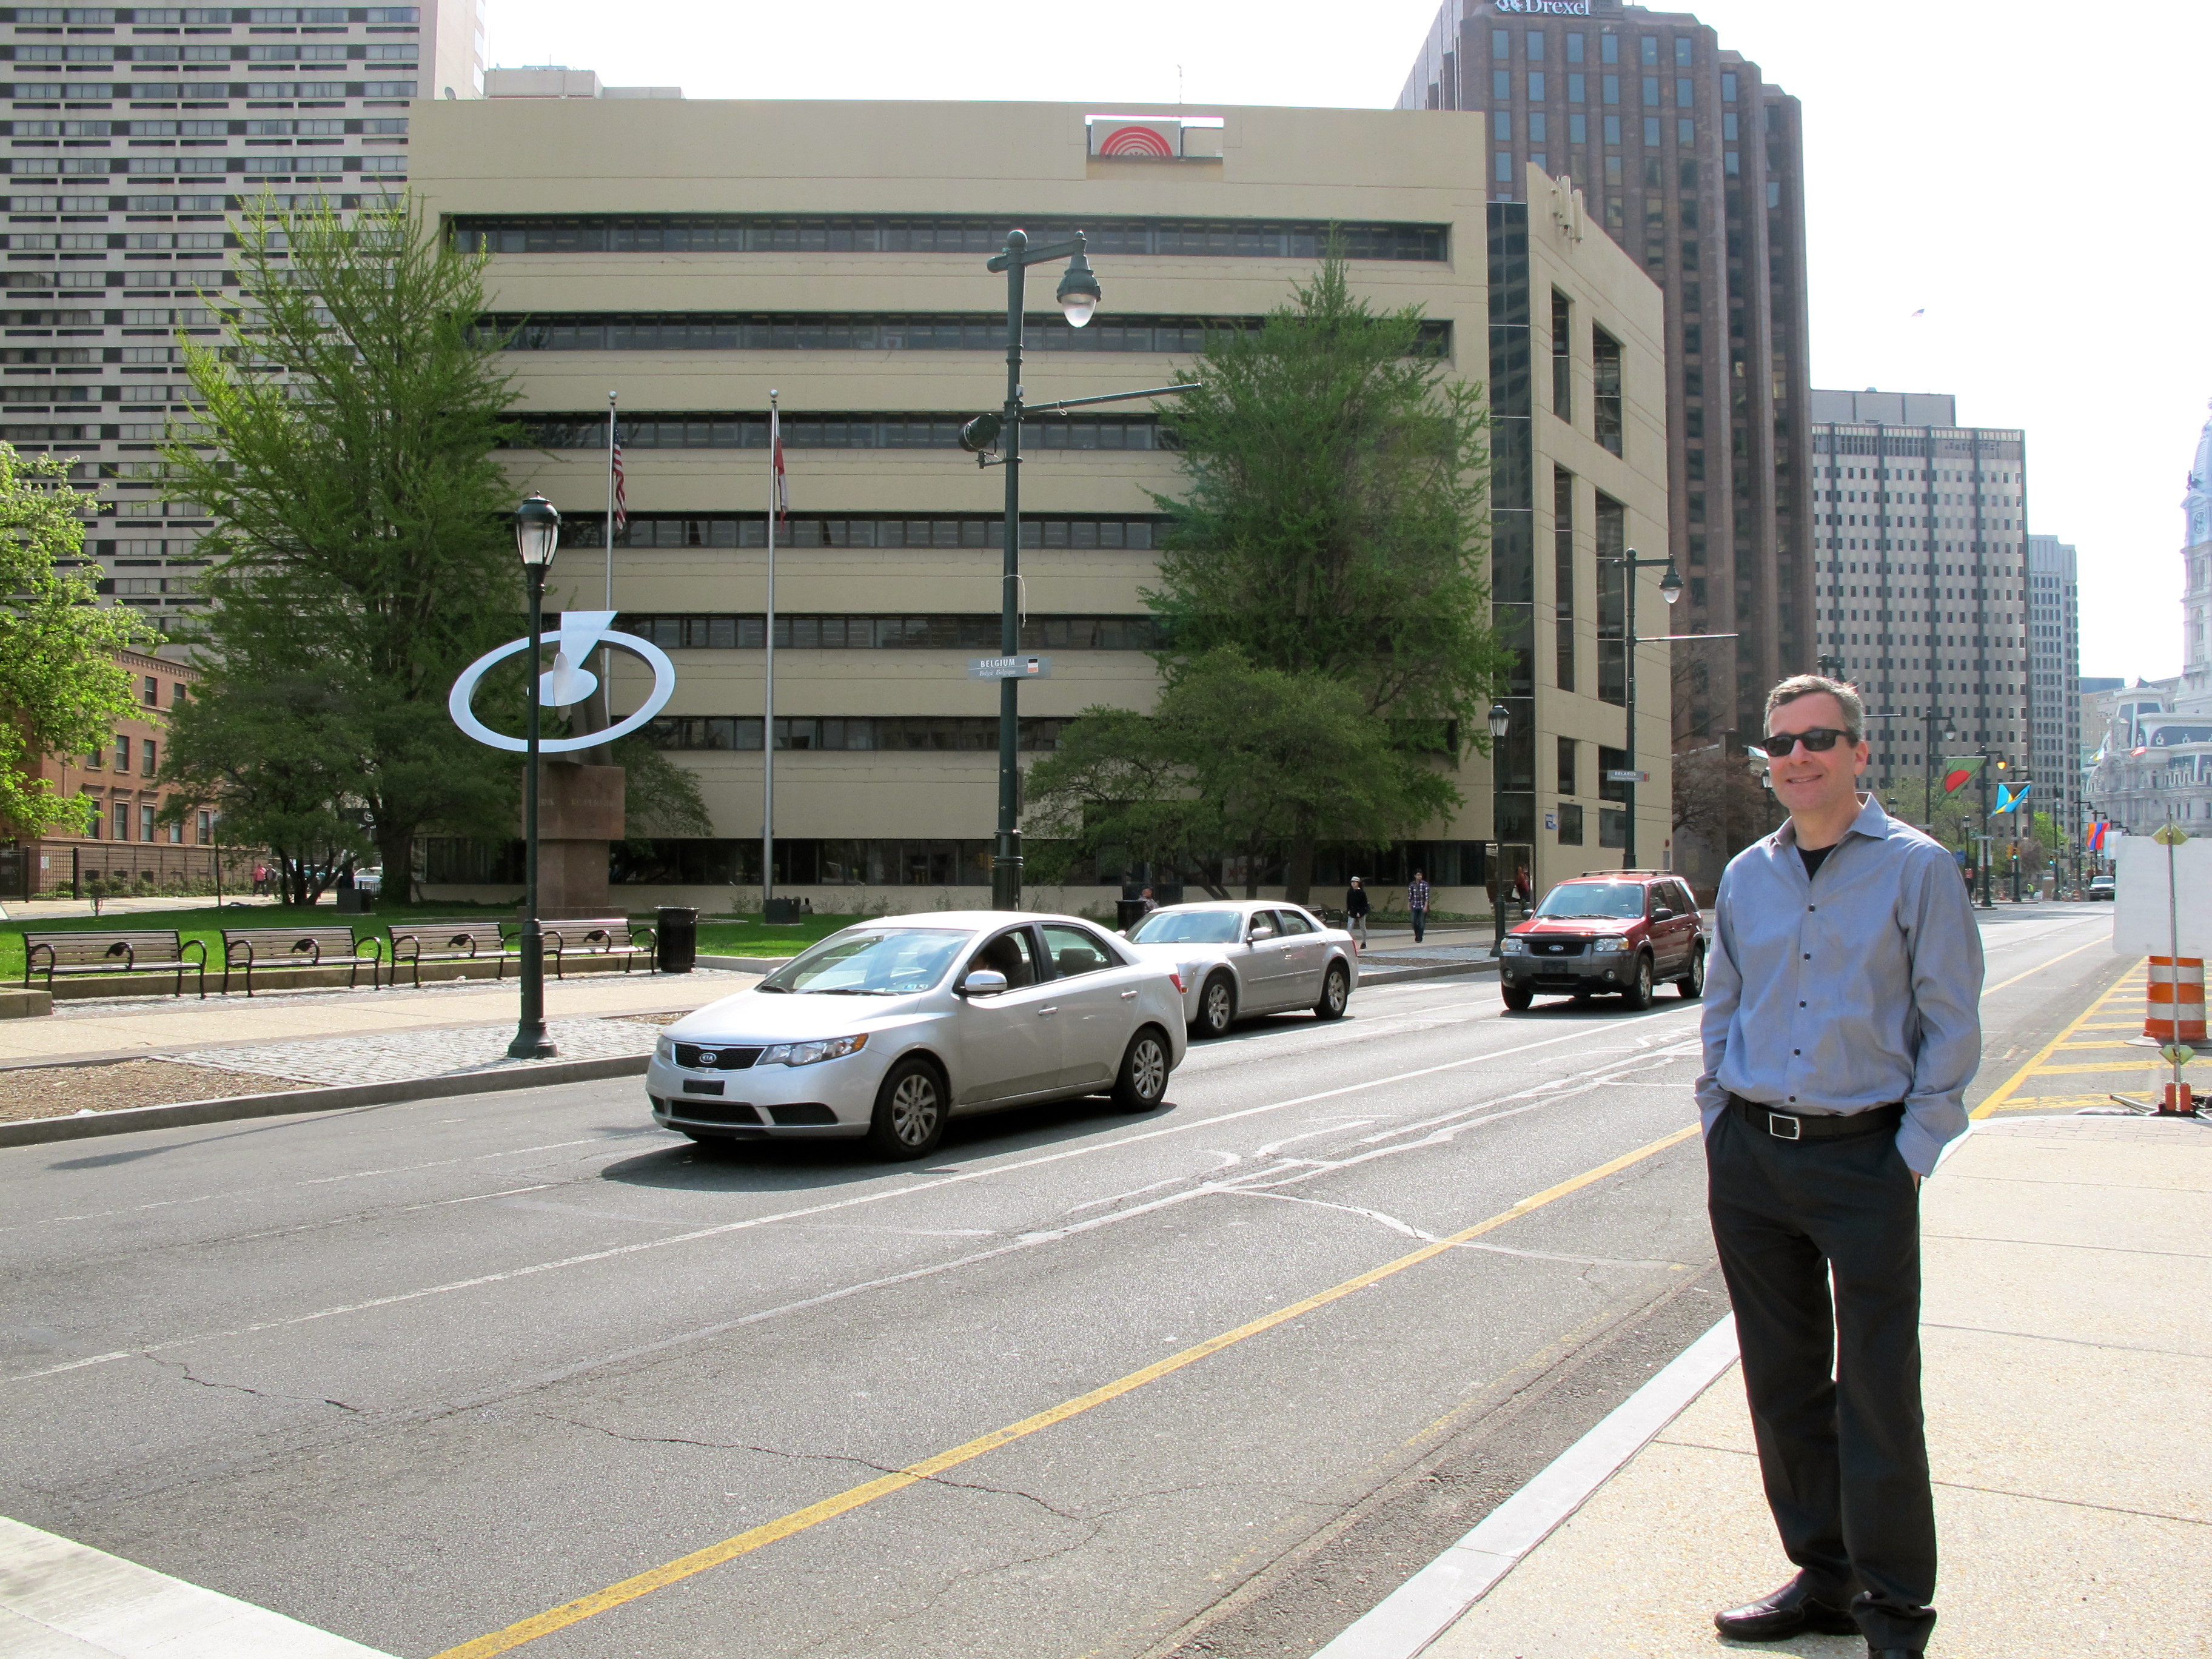 Richard Maimon on the Parkway, United Way building at background